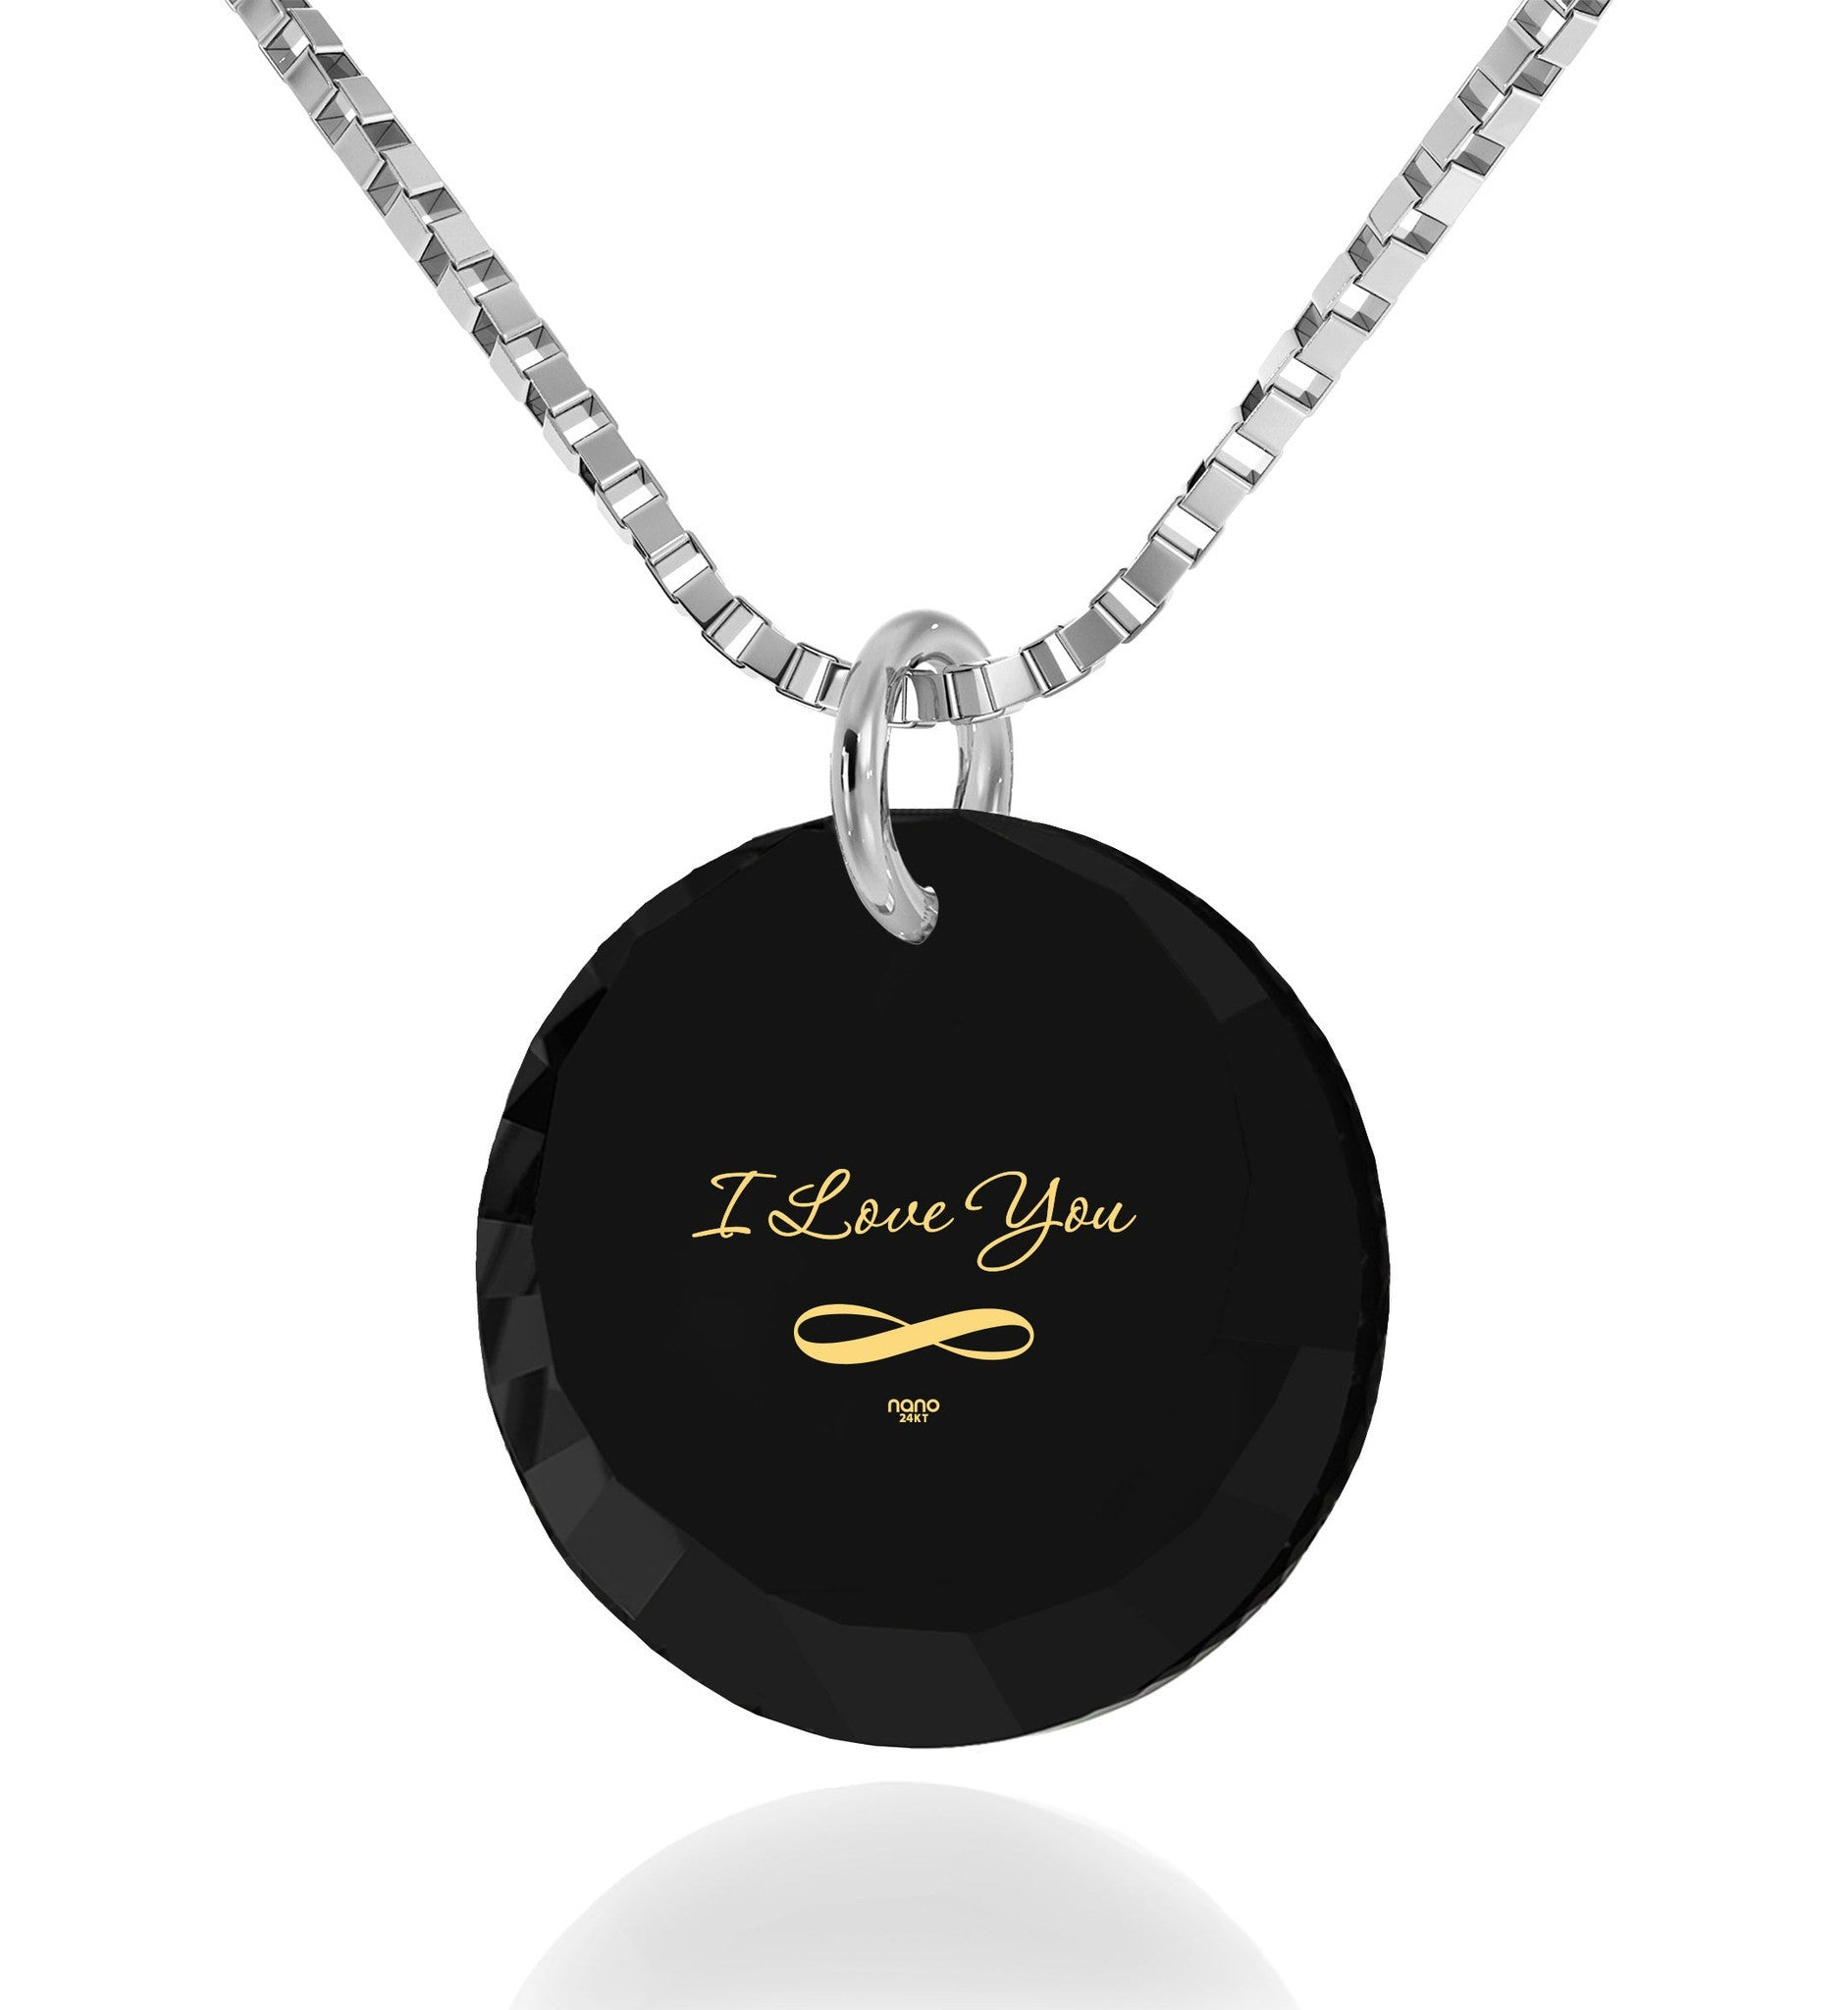 "What to Get Girlfriend for Birthday,""I Love You Infinity"",Sterling Silver Necklace, Pure Romance Products, Nano Jewelry"